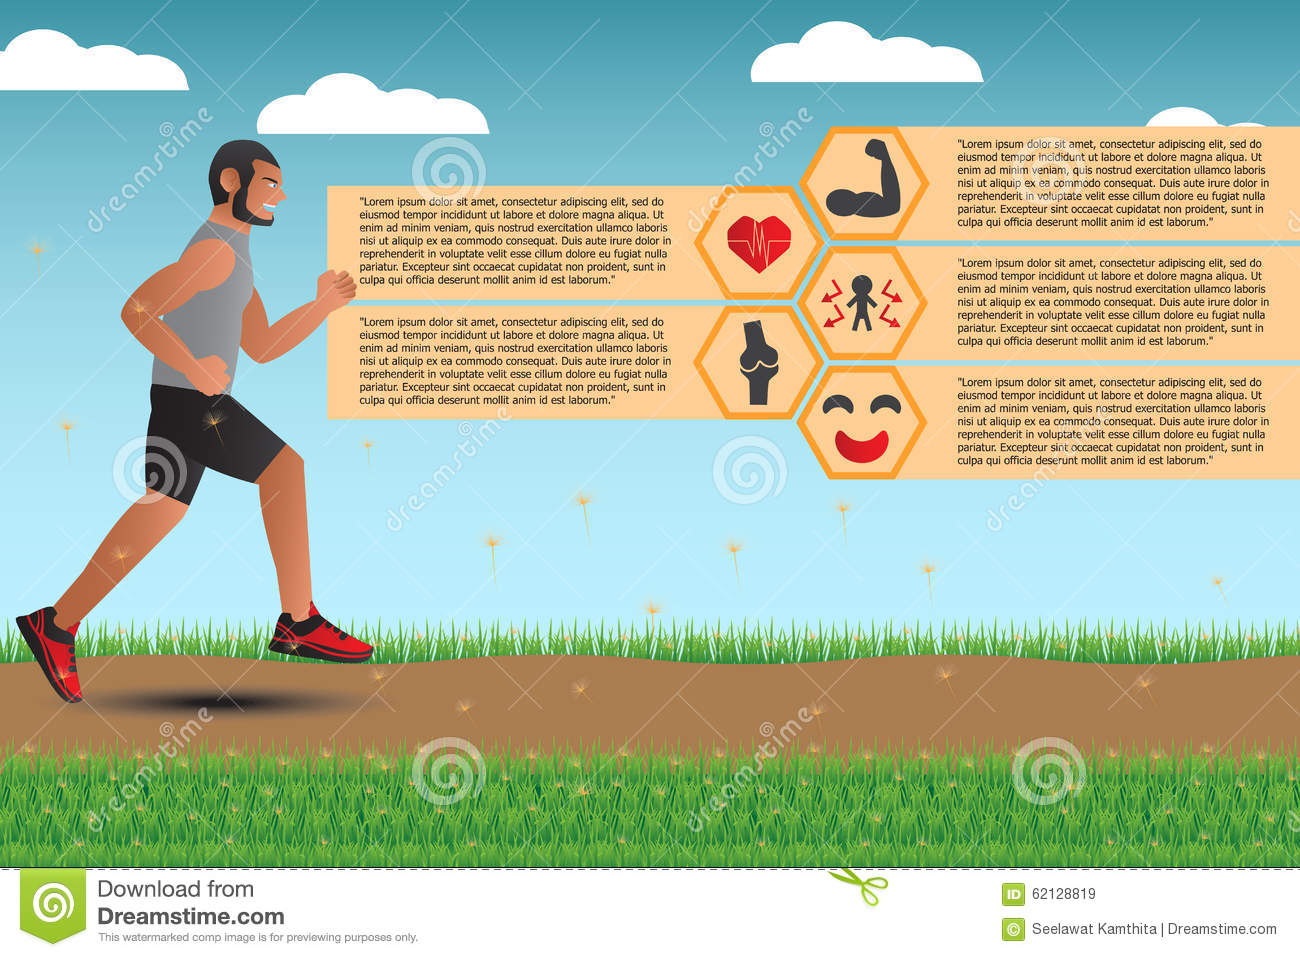 11 Important Benefits of Running